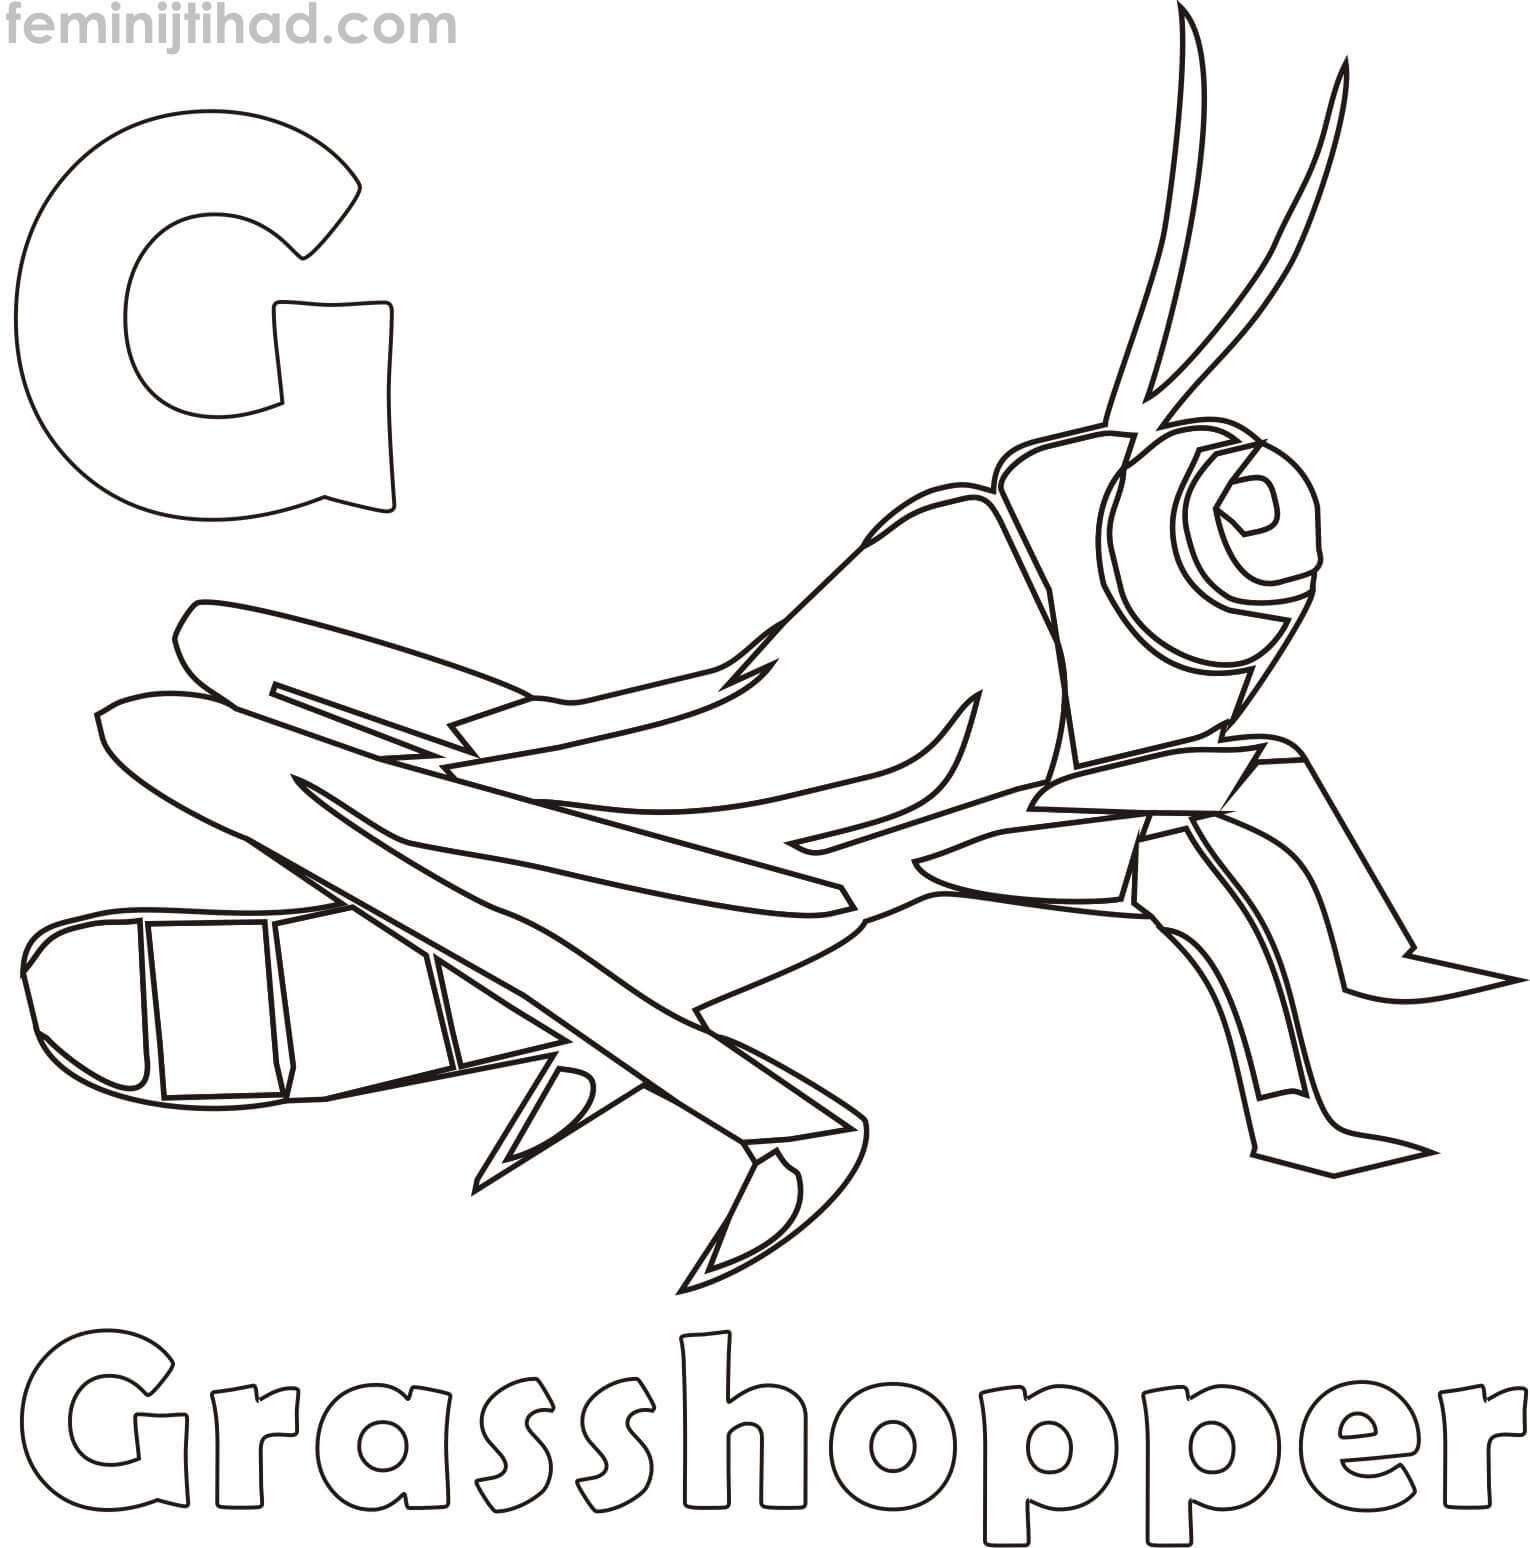 G For Grasshopper Coloring Pages For Kids | Animal ...